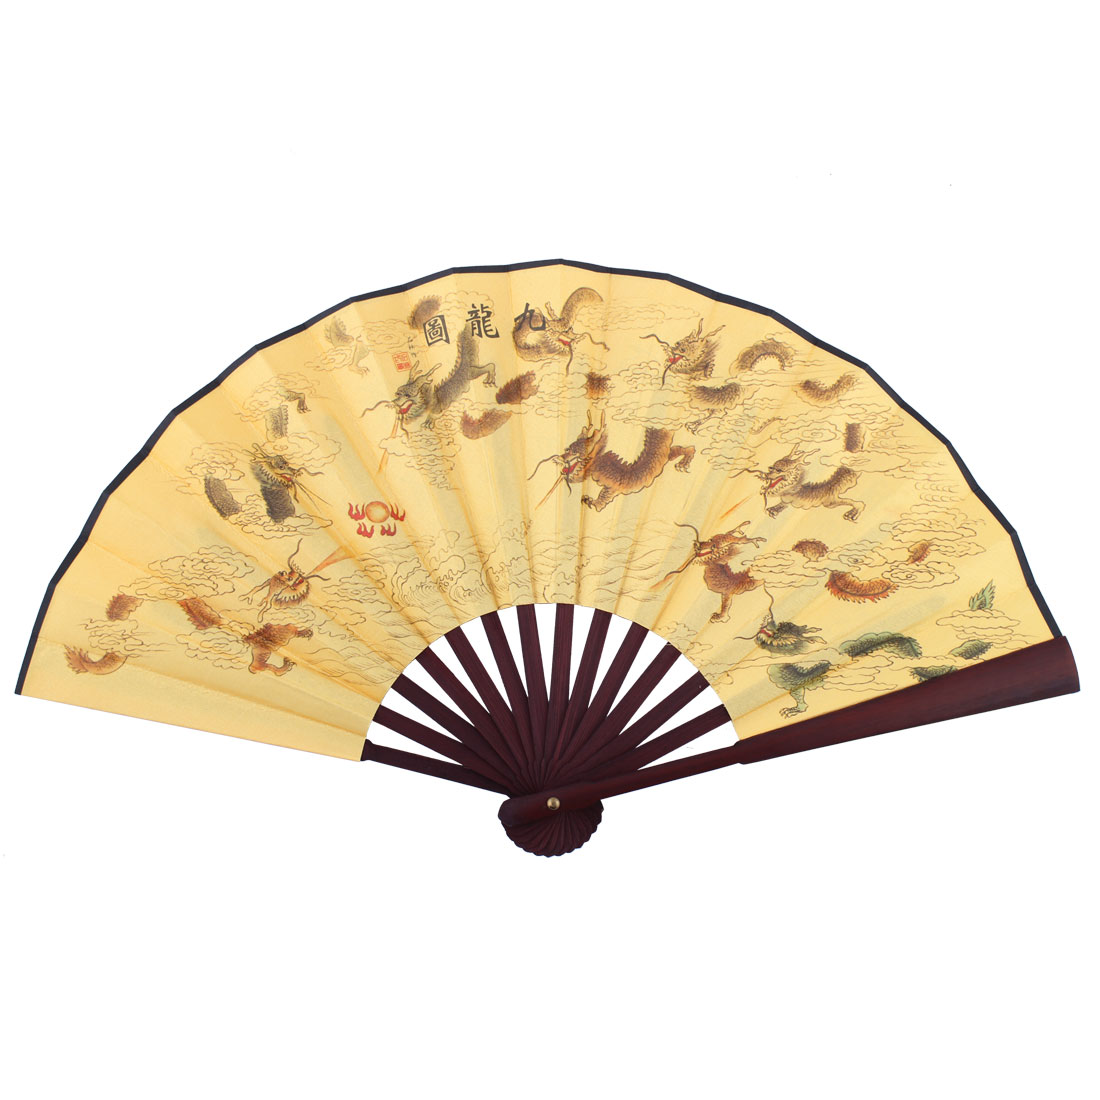 Wooden Frame Dragon Pattern Chinese Retro Style Folding Handheld Fan Yellow